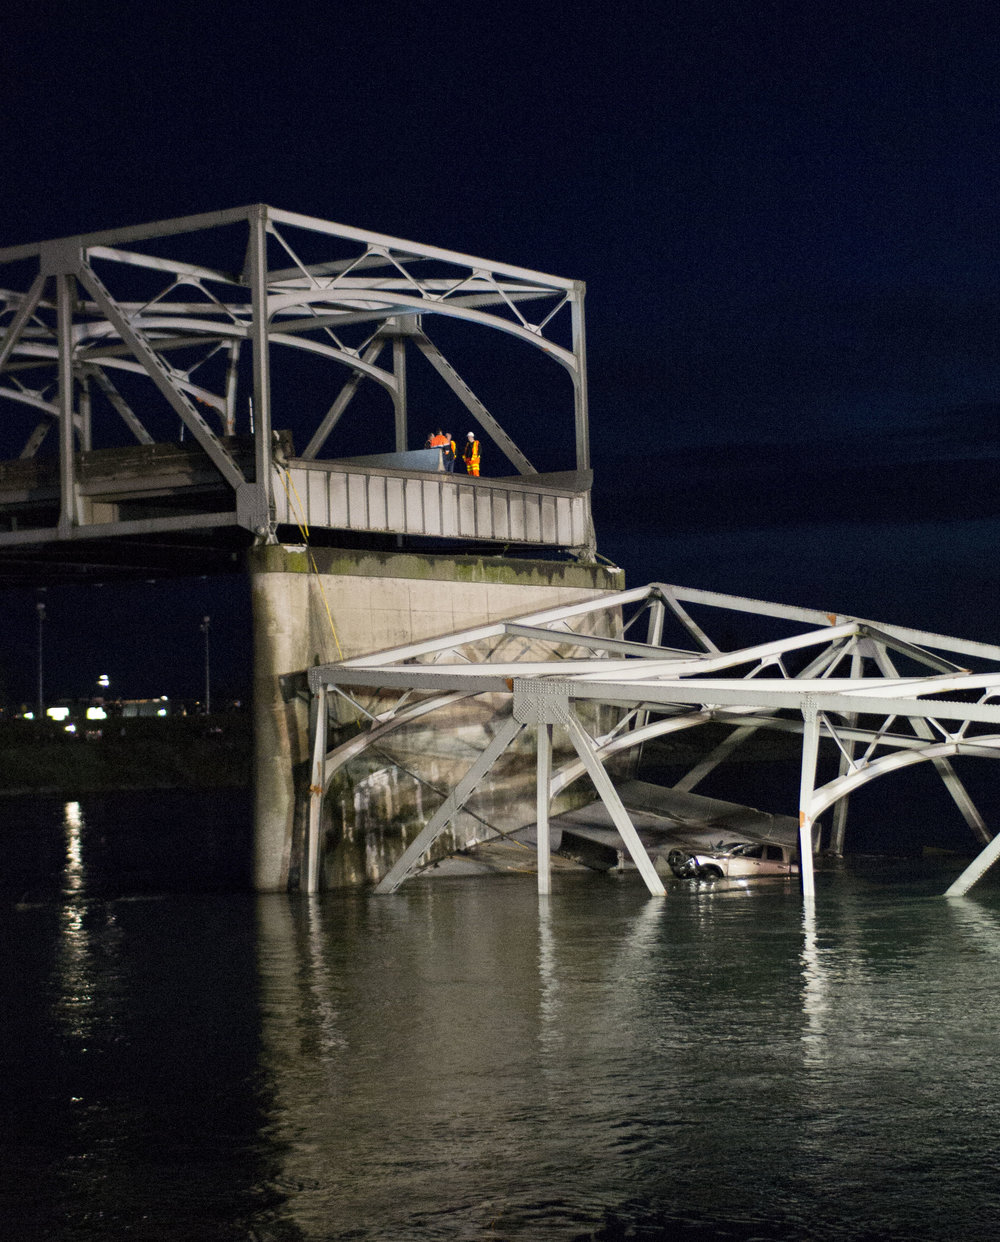 I-5 Skagit Bridge Collapse - Two cars plunged into Washington's Skagit River following the collapse of the Interstate 5 bridge on May 23, 2013. (The Western Front)